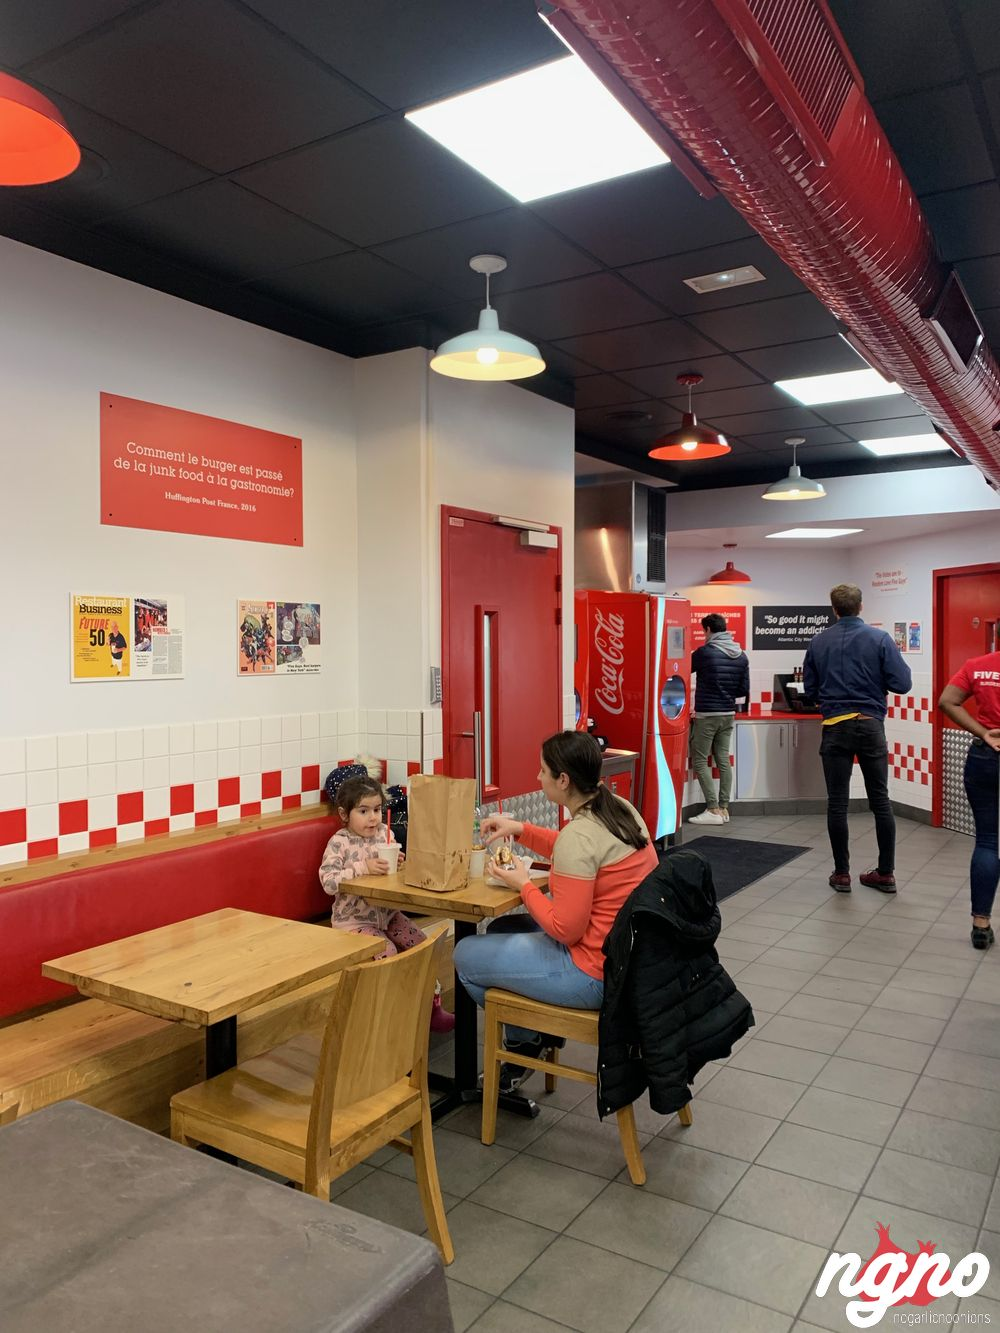 five-guys-paris-nogarlicnoonions-242019-04-17-08-17-04